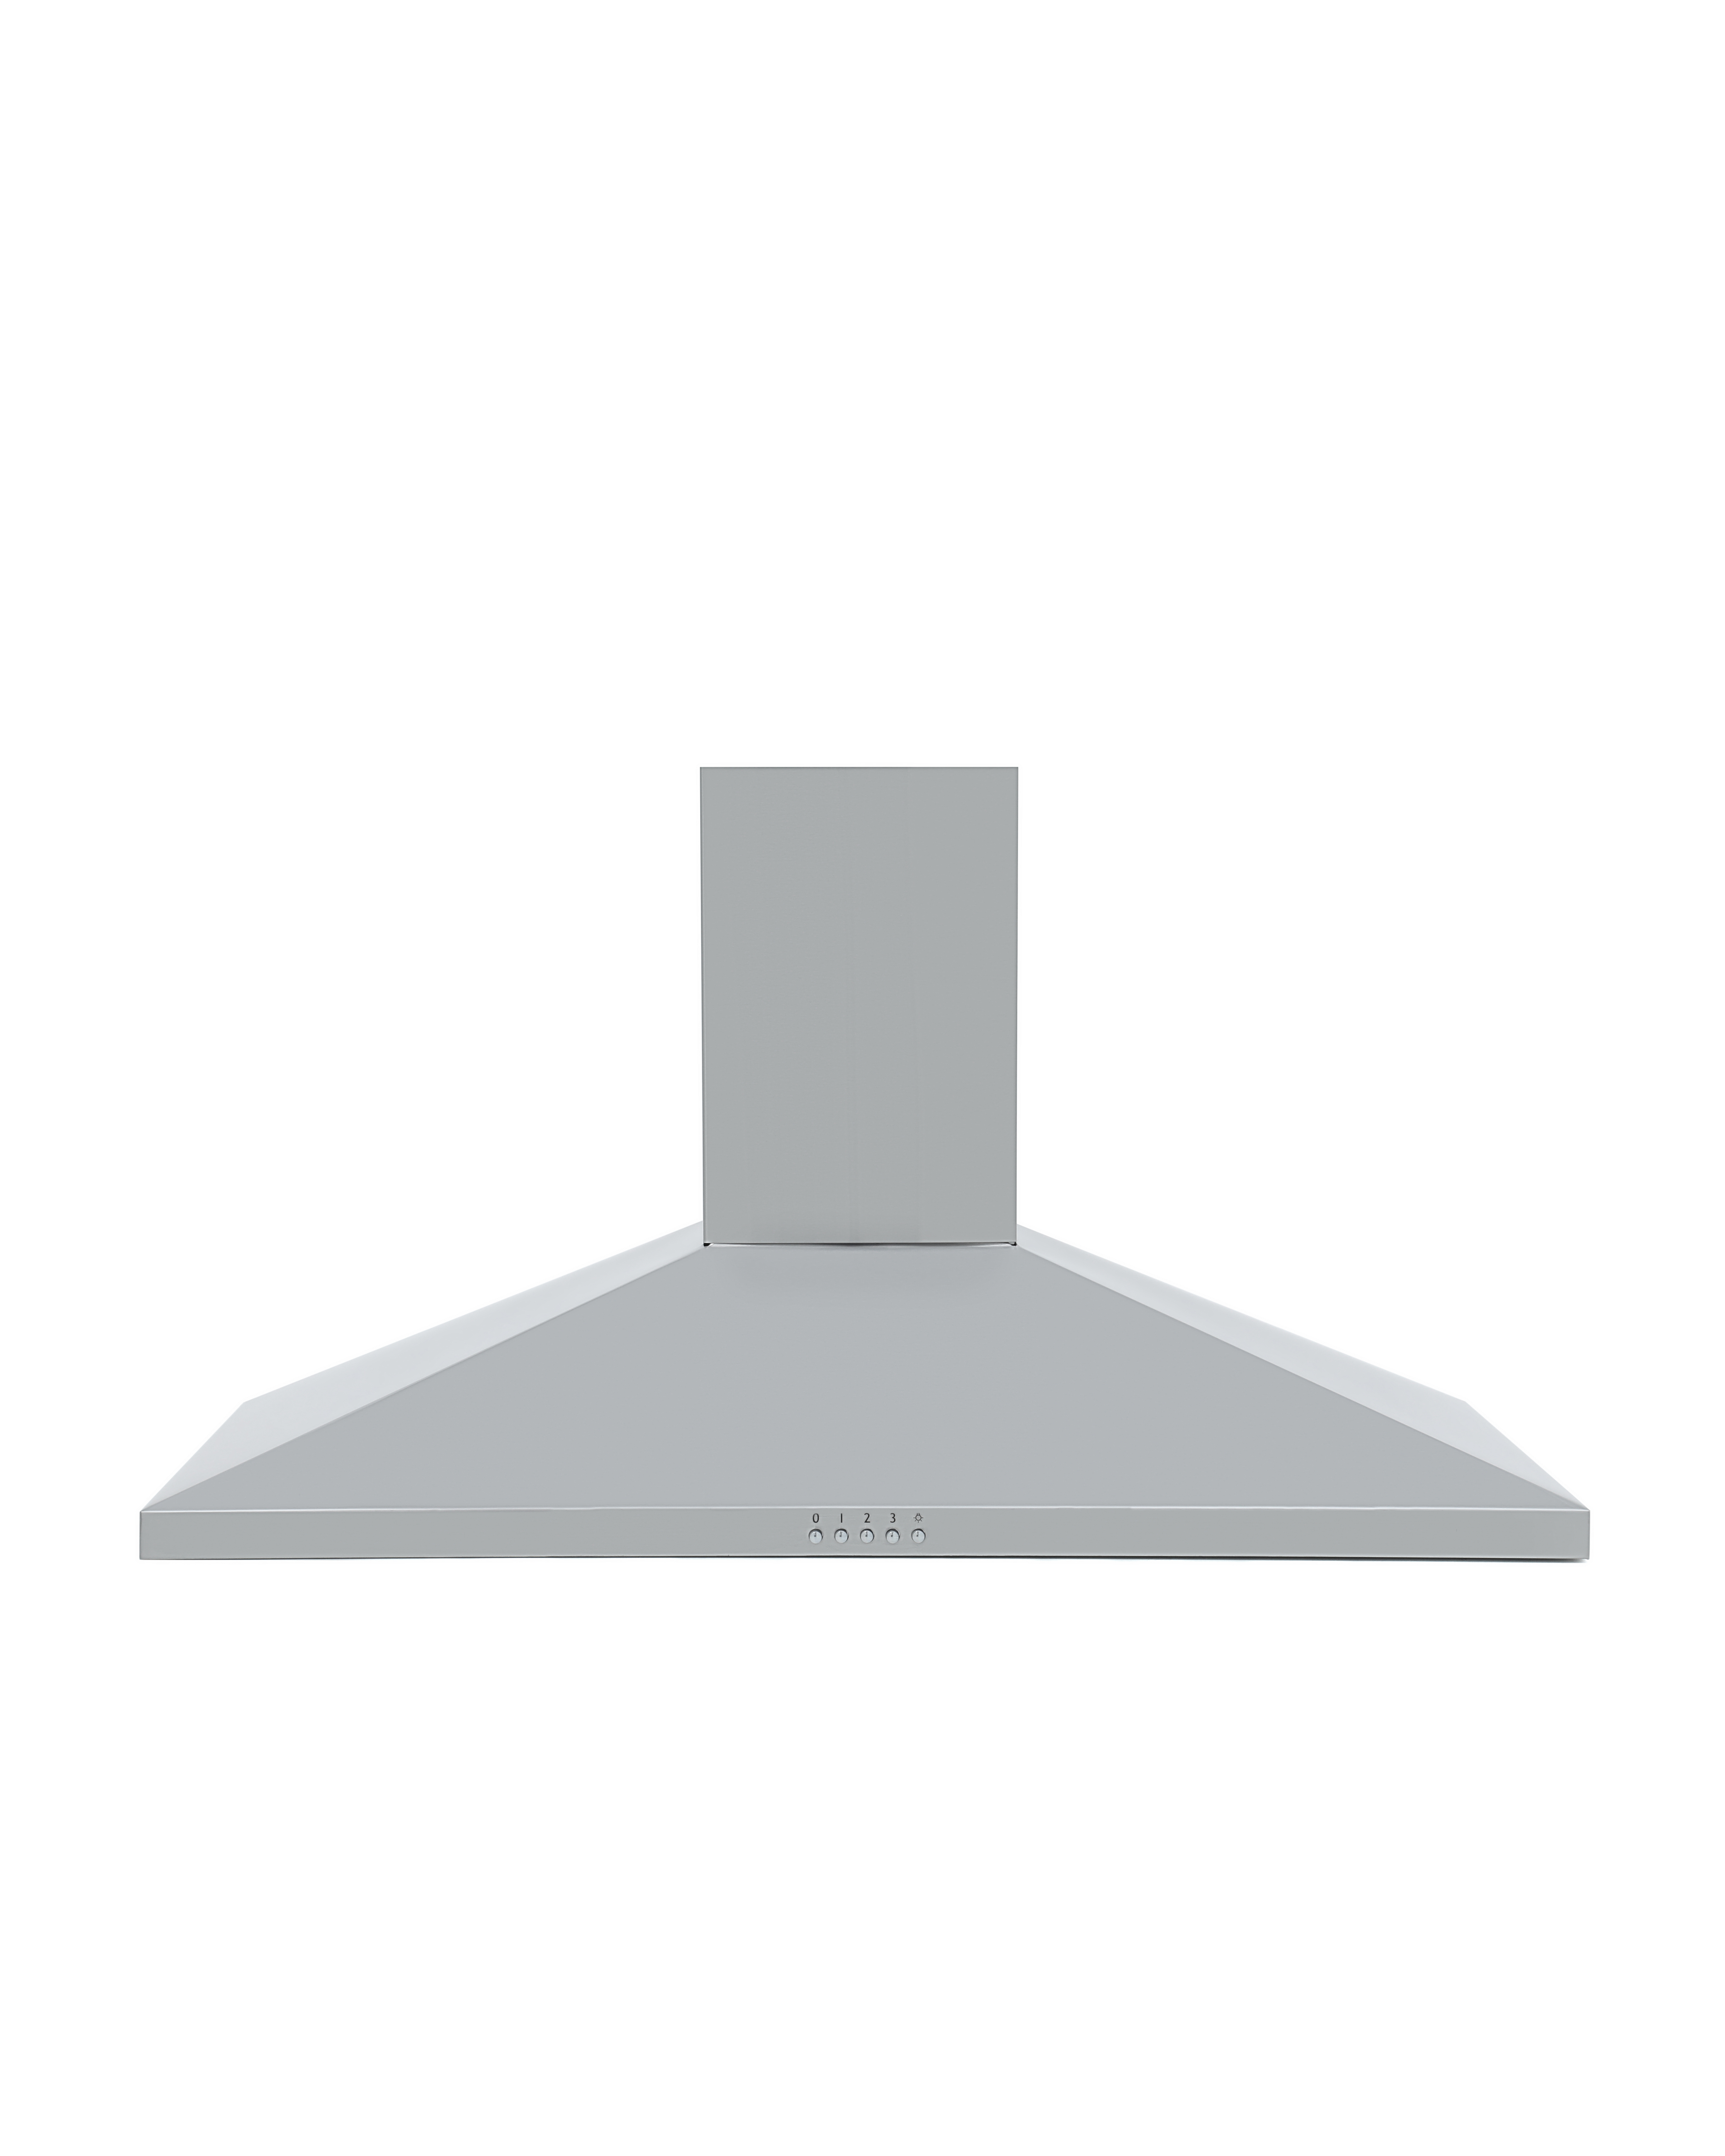 Montpellier MH900X 'A' Energy Rated Chimney Hood